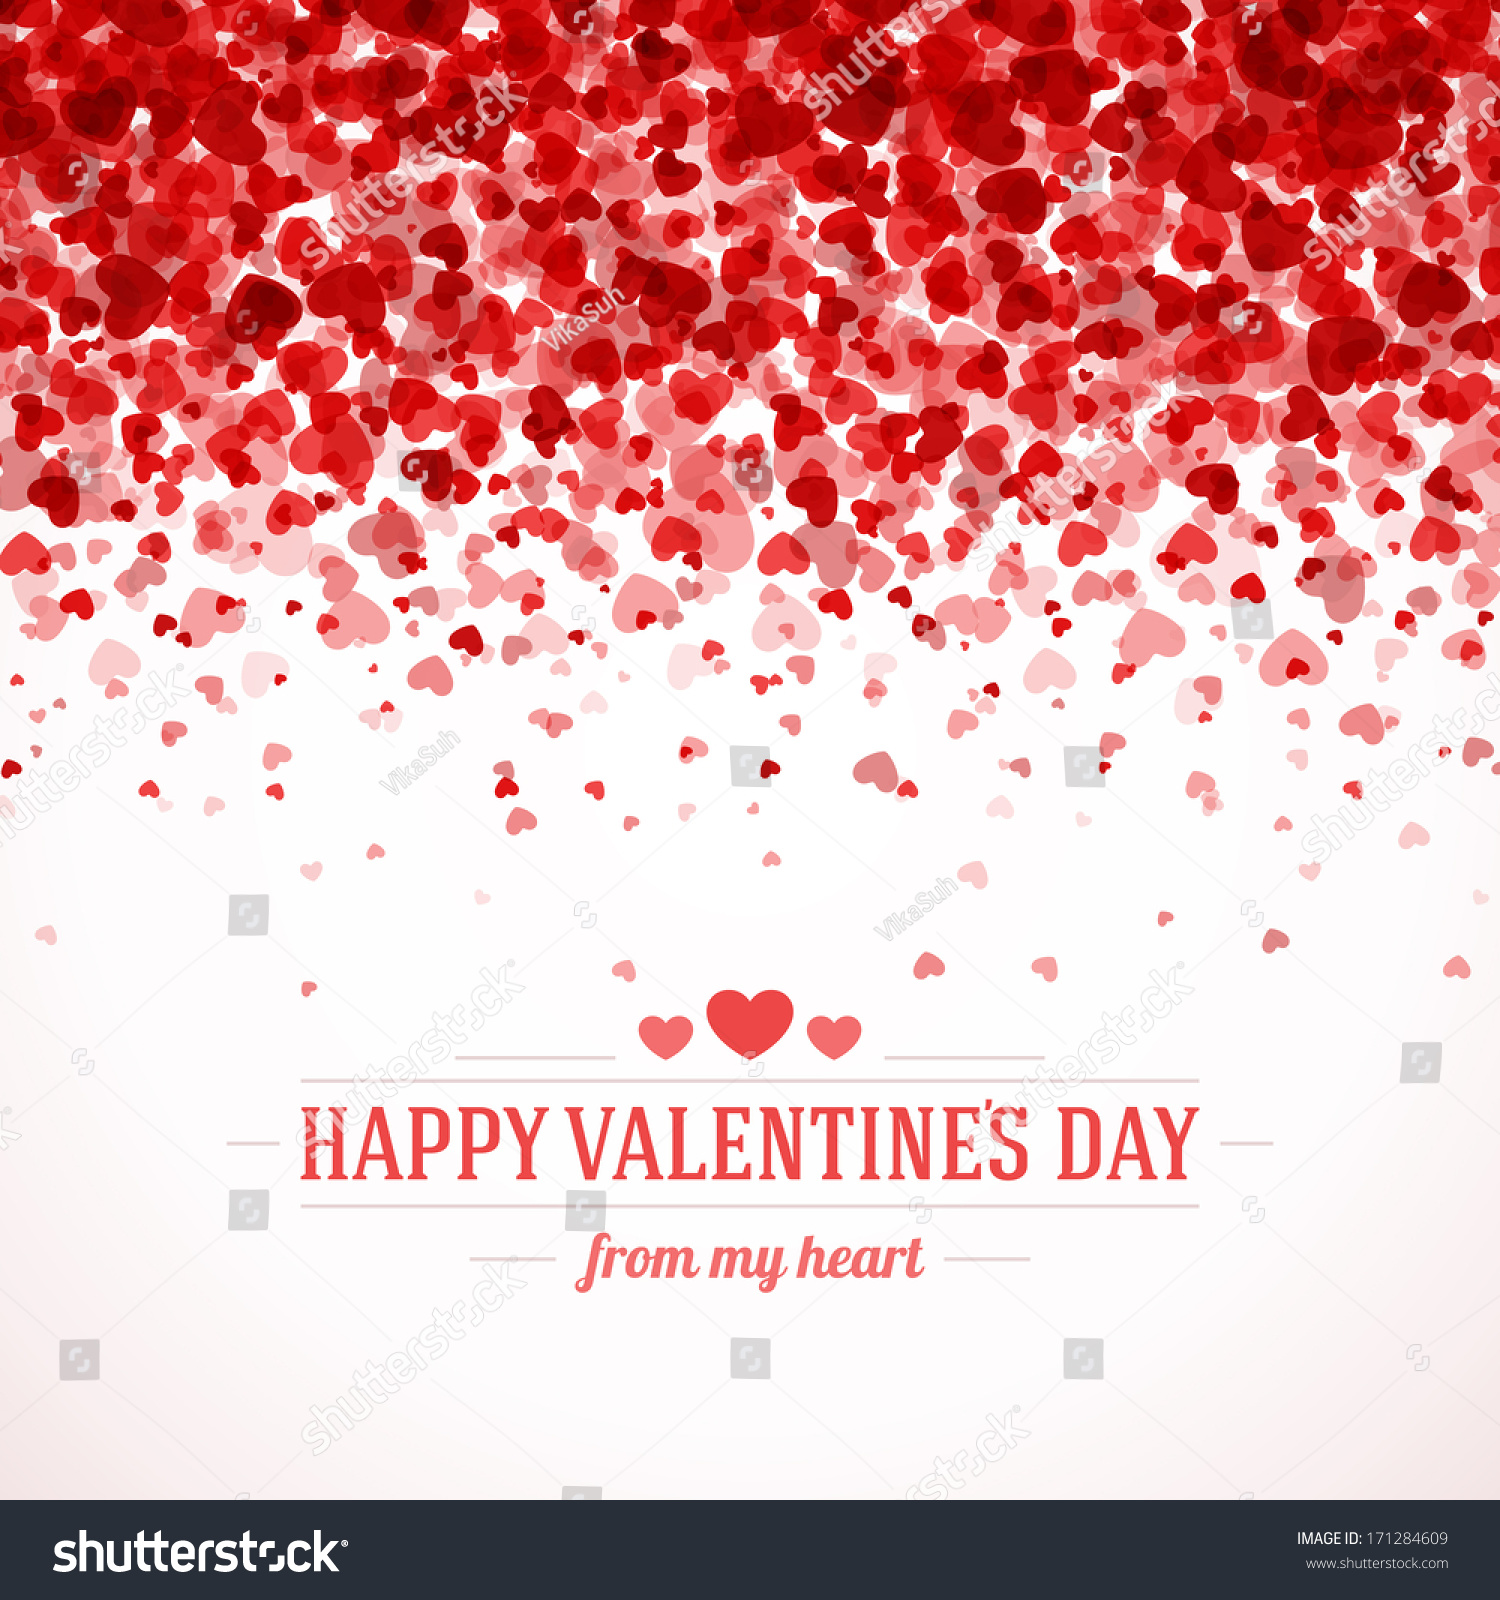 Happy Valentines Day Card Hearts Light Vector 171284609 – Valentine Card Background